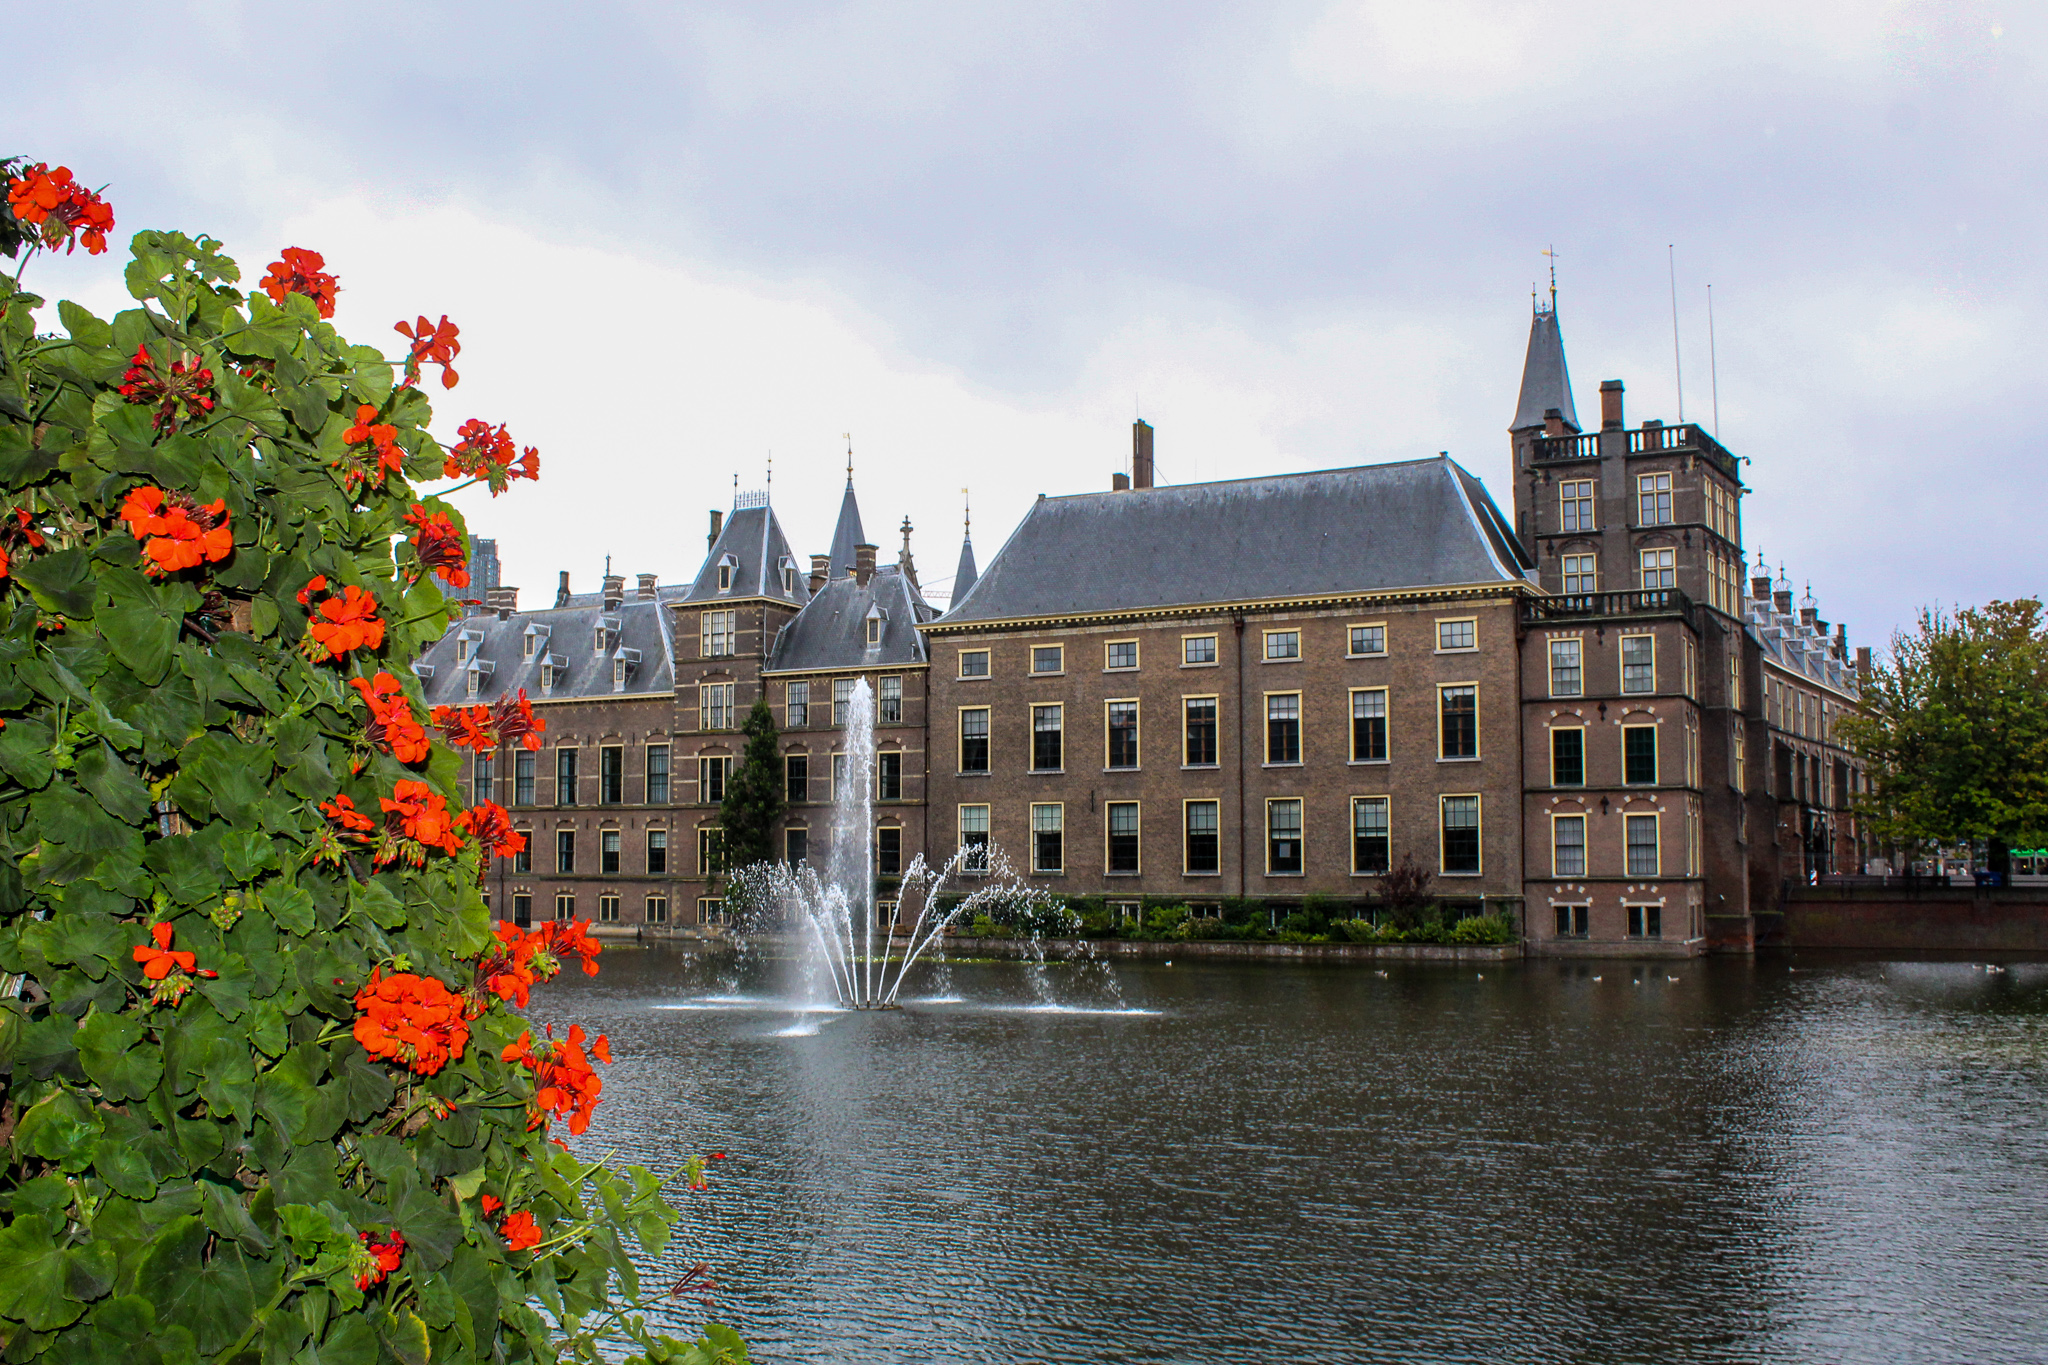 half day trips from amsterdam can include the hague